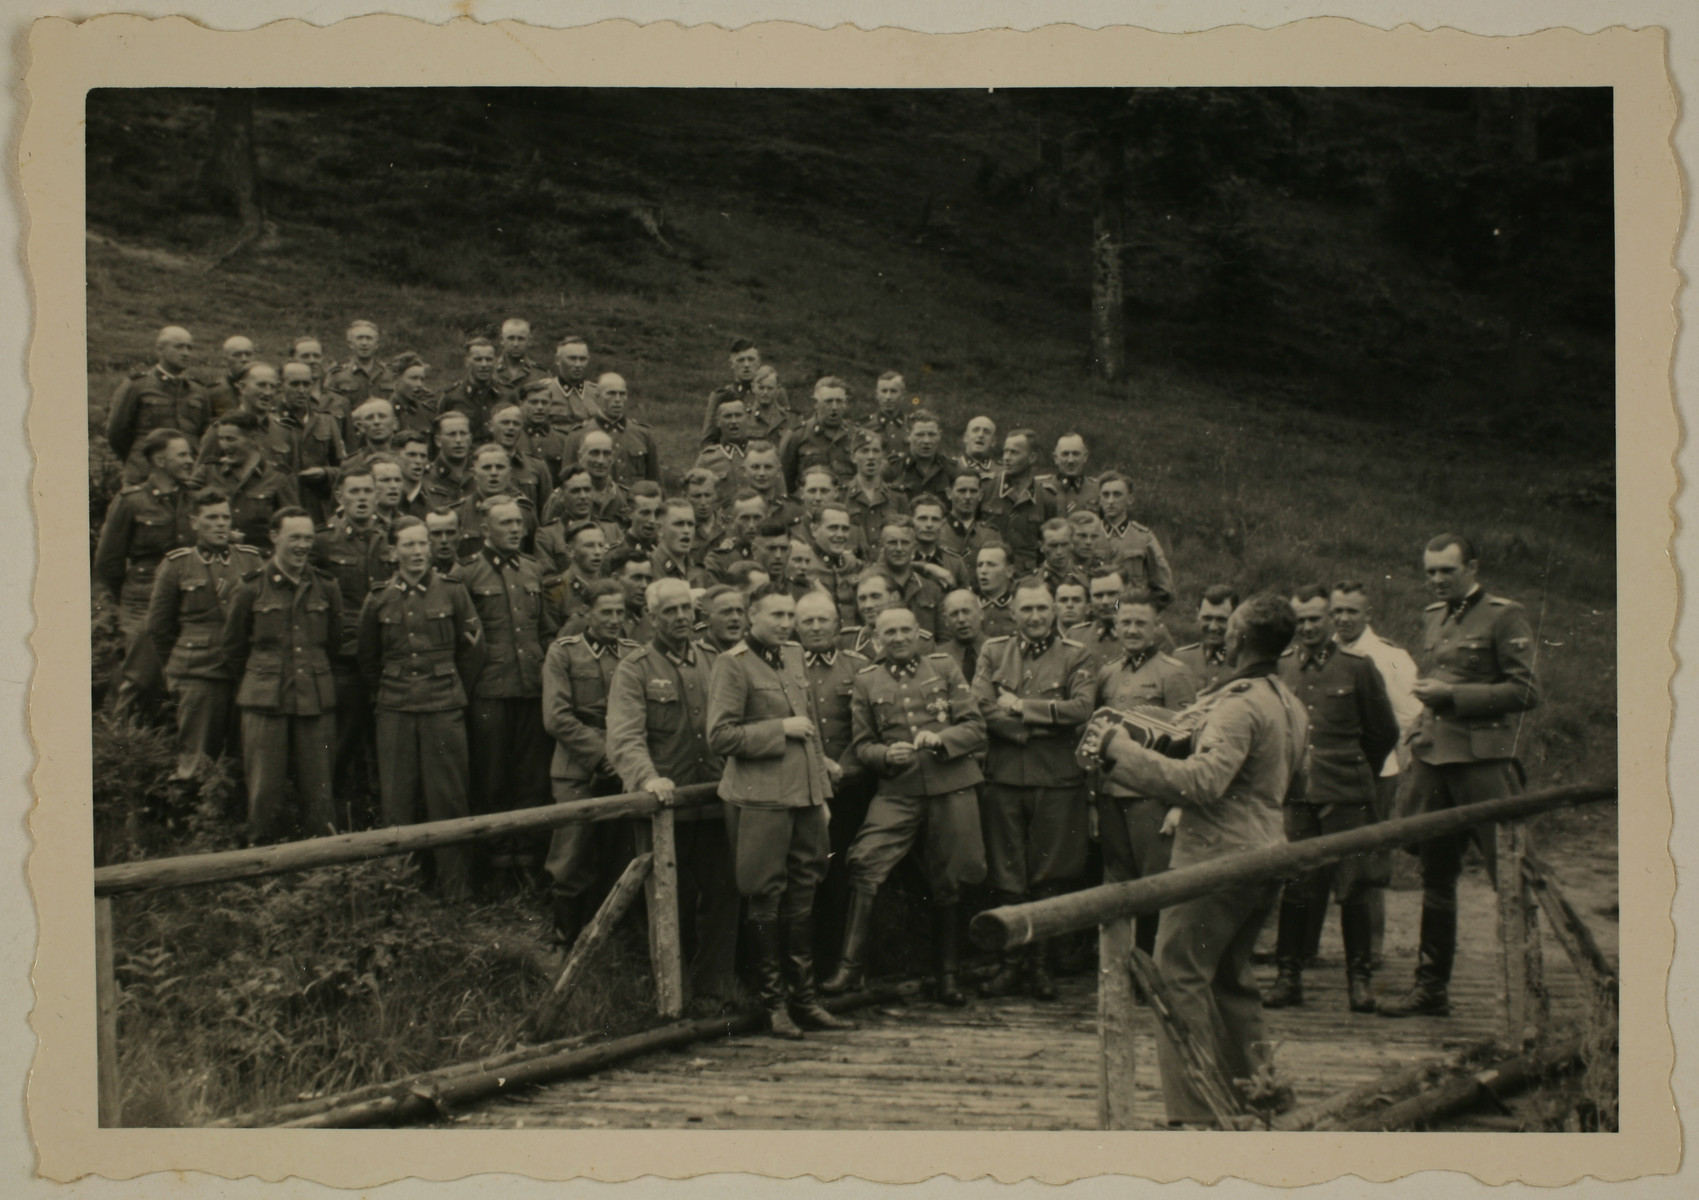 An accordionist leads a sing-along for SS officers at their retreat at Solahuette outside Auschwitz.  Pictured in the front row are Karl Hoecker, Otto Moll, Rudolf Hoess, Richard Baer, Josef Kramer (standing slightly behind Hoessler and partially obscured), Franz Hoessler, Josef Mengele, and Walter Schmidetzki.  [Based on the officers visiting Solahutte, we surmise that the photographs were taken to honor Rudolf Hoess who completed his tenure as garrison senior on July 29.]